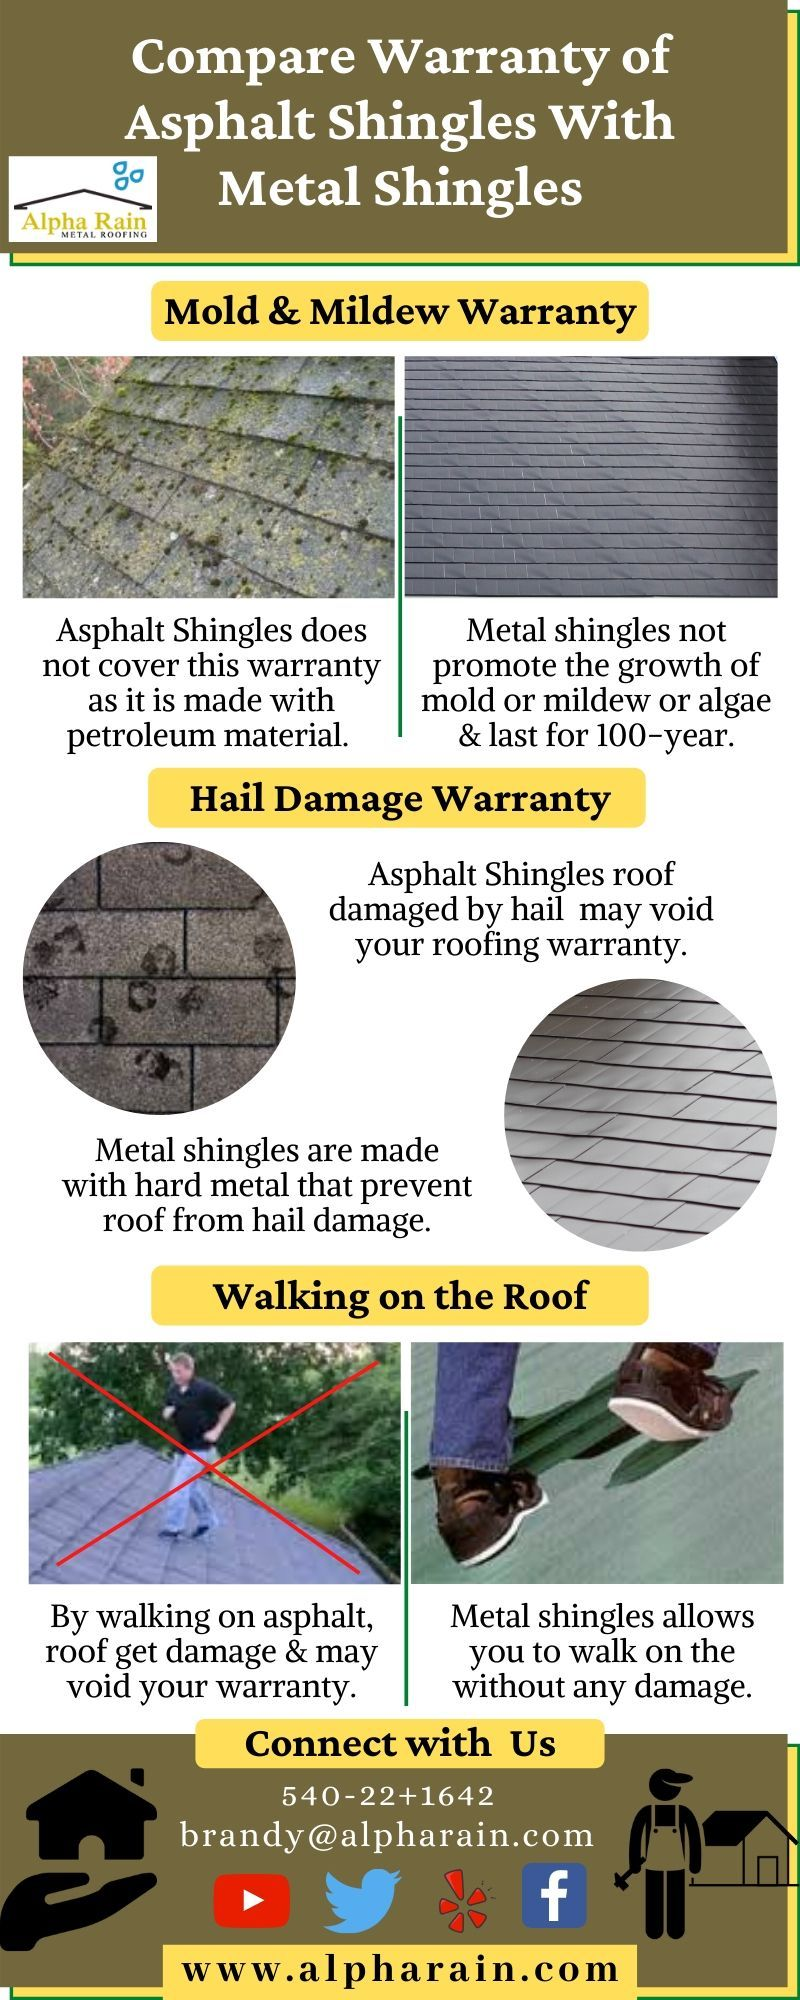 What Are The Warranties You Will Get With Metal Shingles In 2020 Metal Shingles Asphalt Roof Shingles Shingling